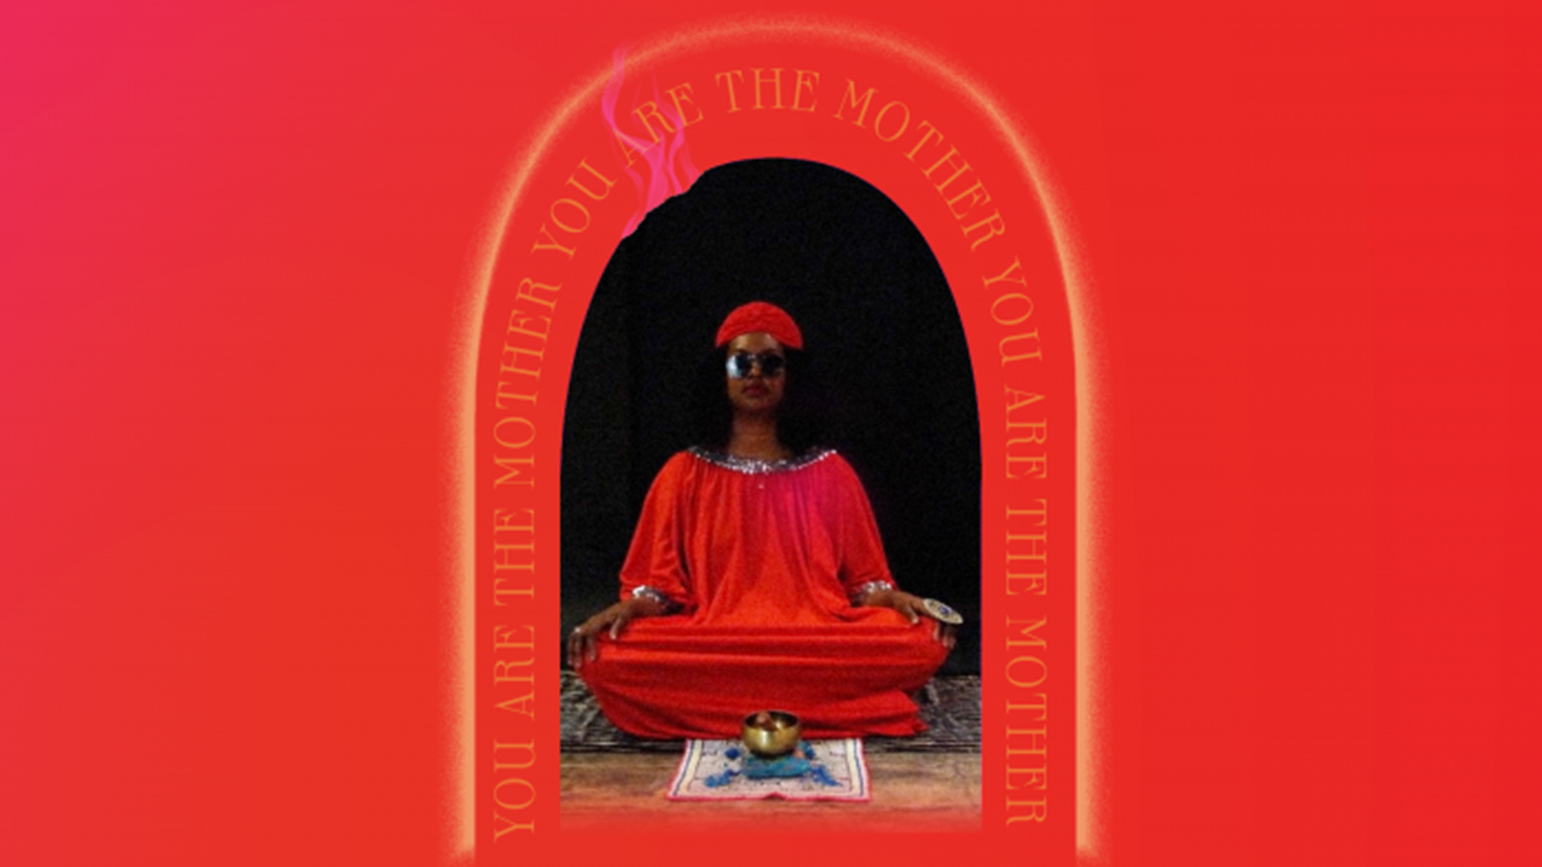 Person sitting in a mediation pose with a red background